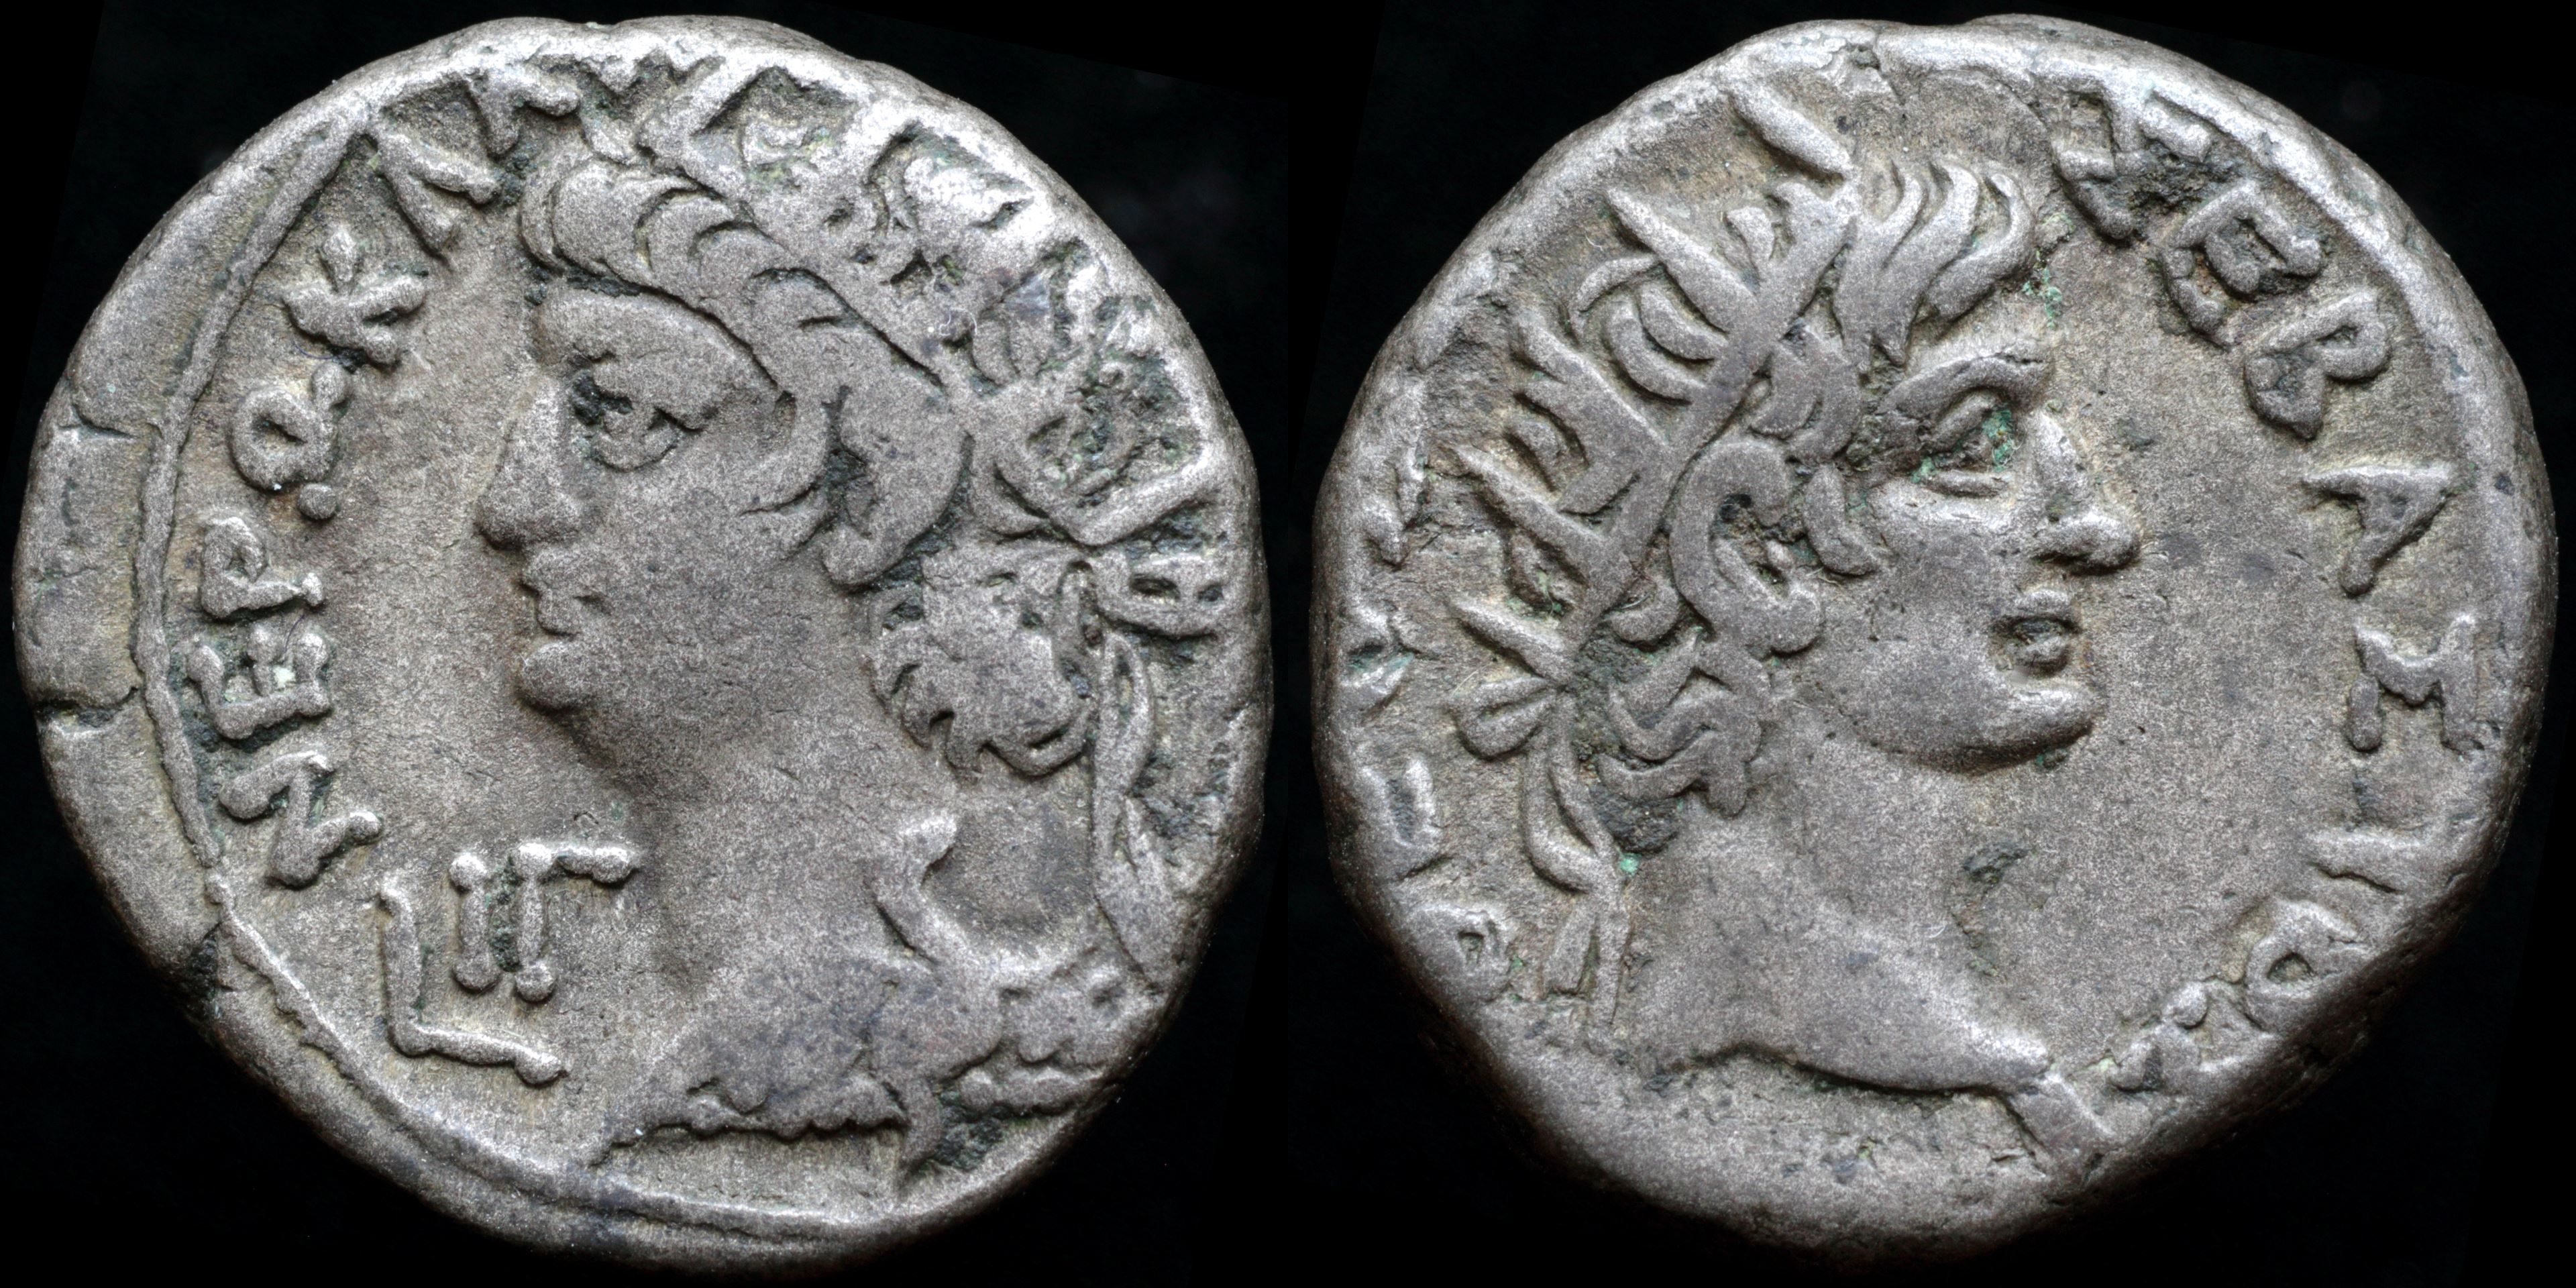 /Files/Images/Coinsite/CoinDB/Nero_Alexandria_Augustus_tetra.jpg